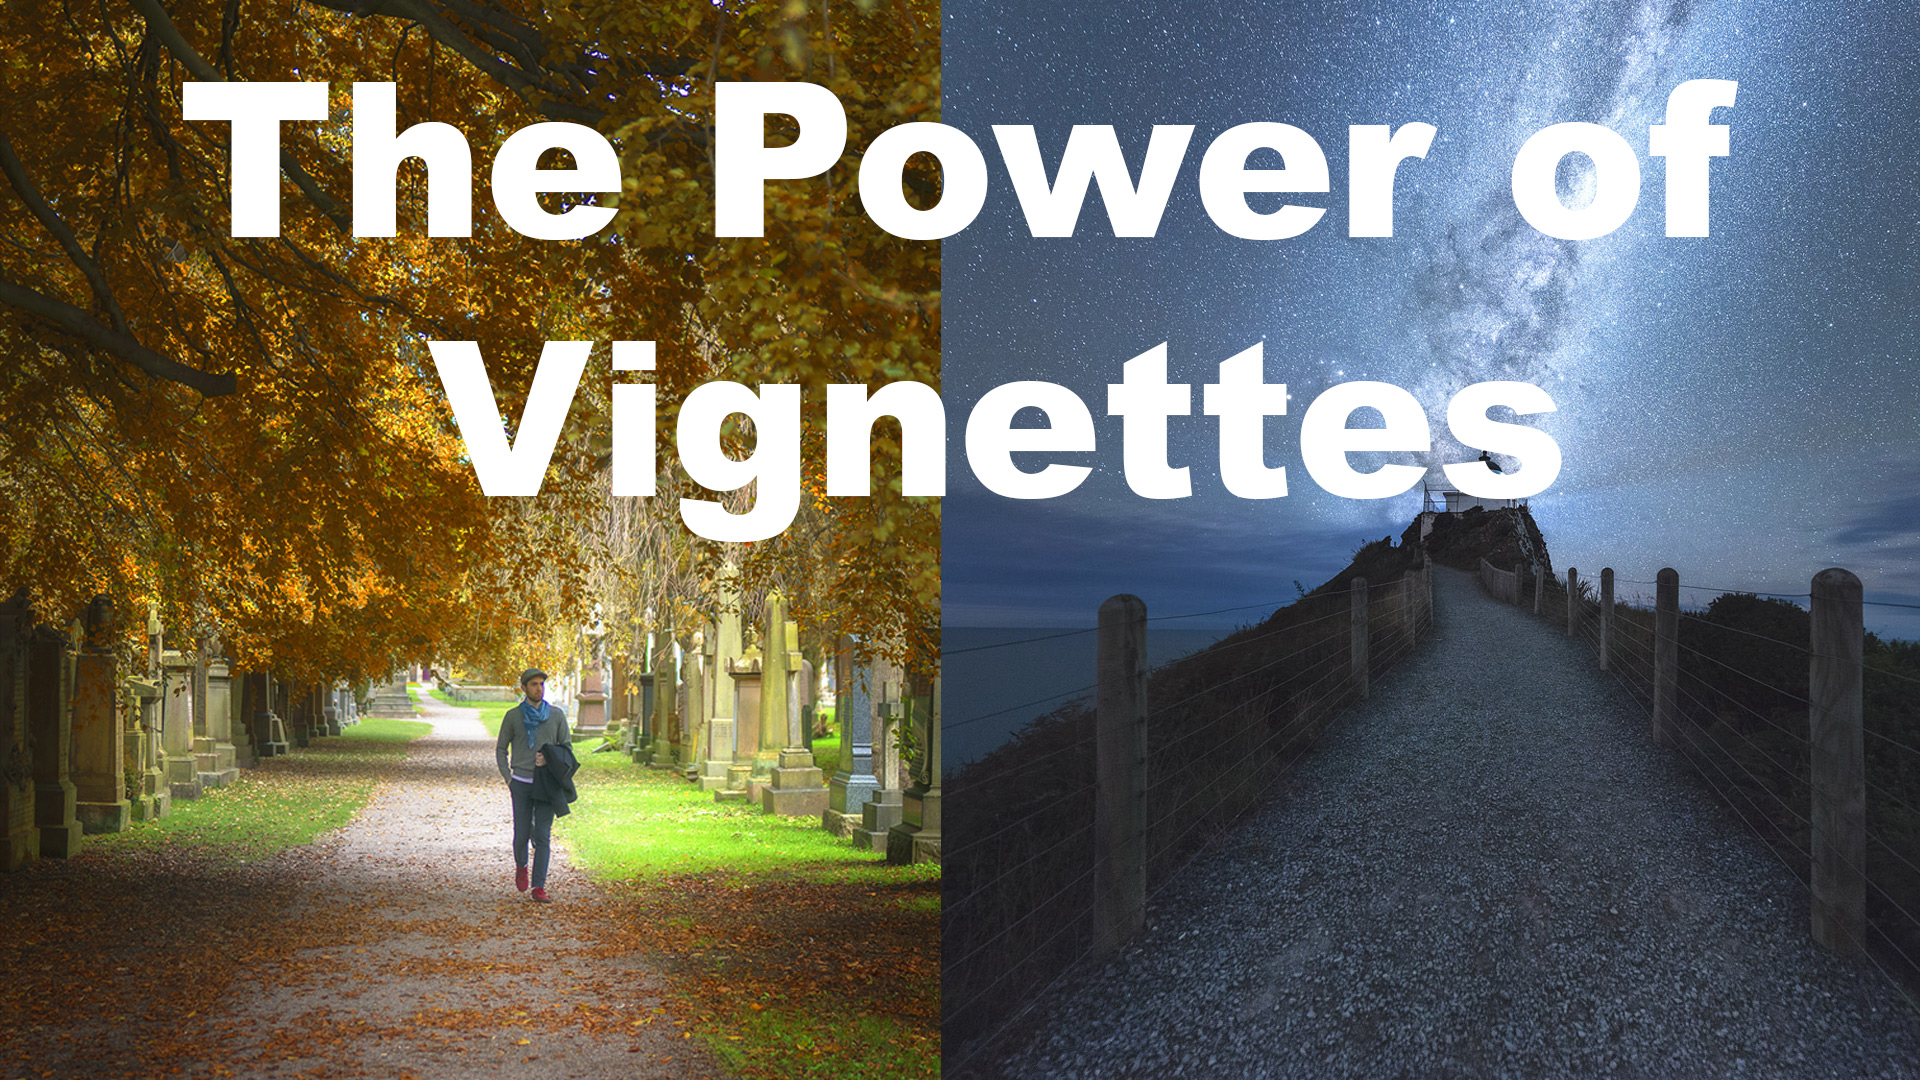 Ask Jimmy 1: The Power of Vignettes